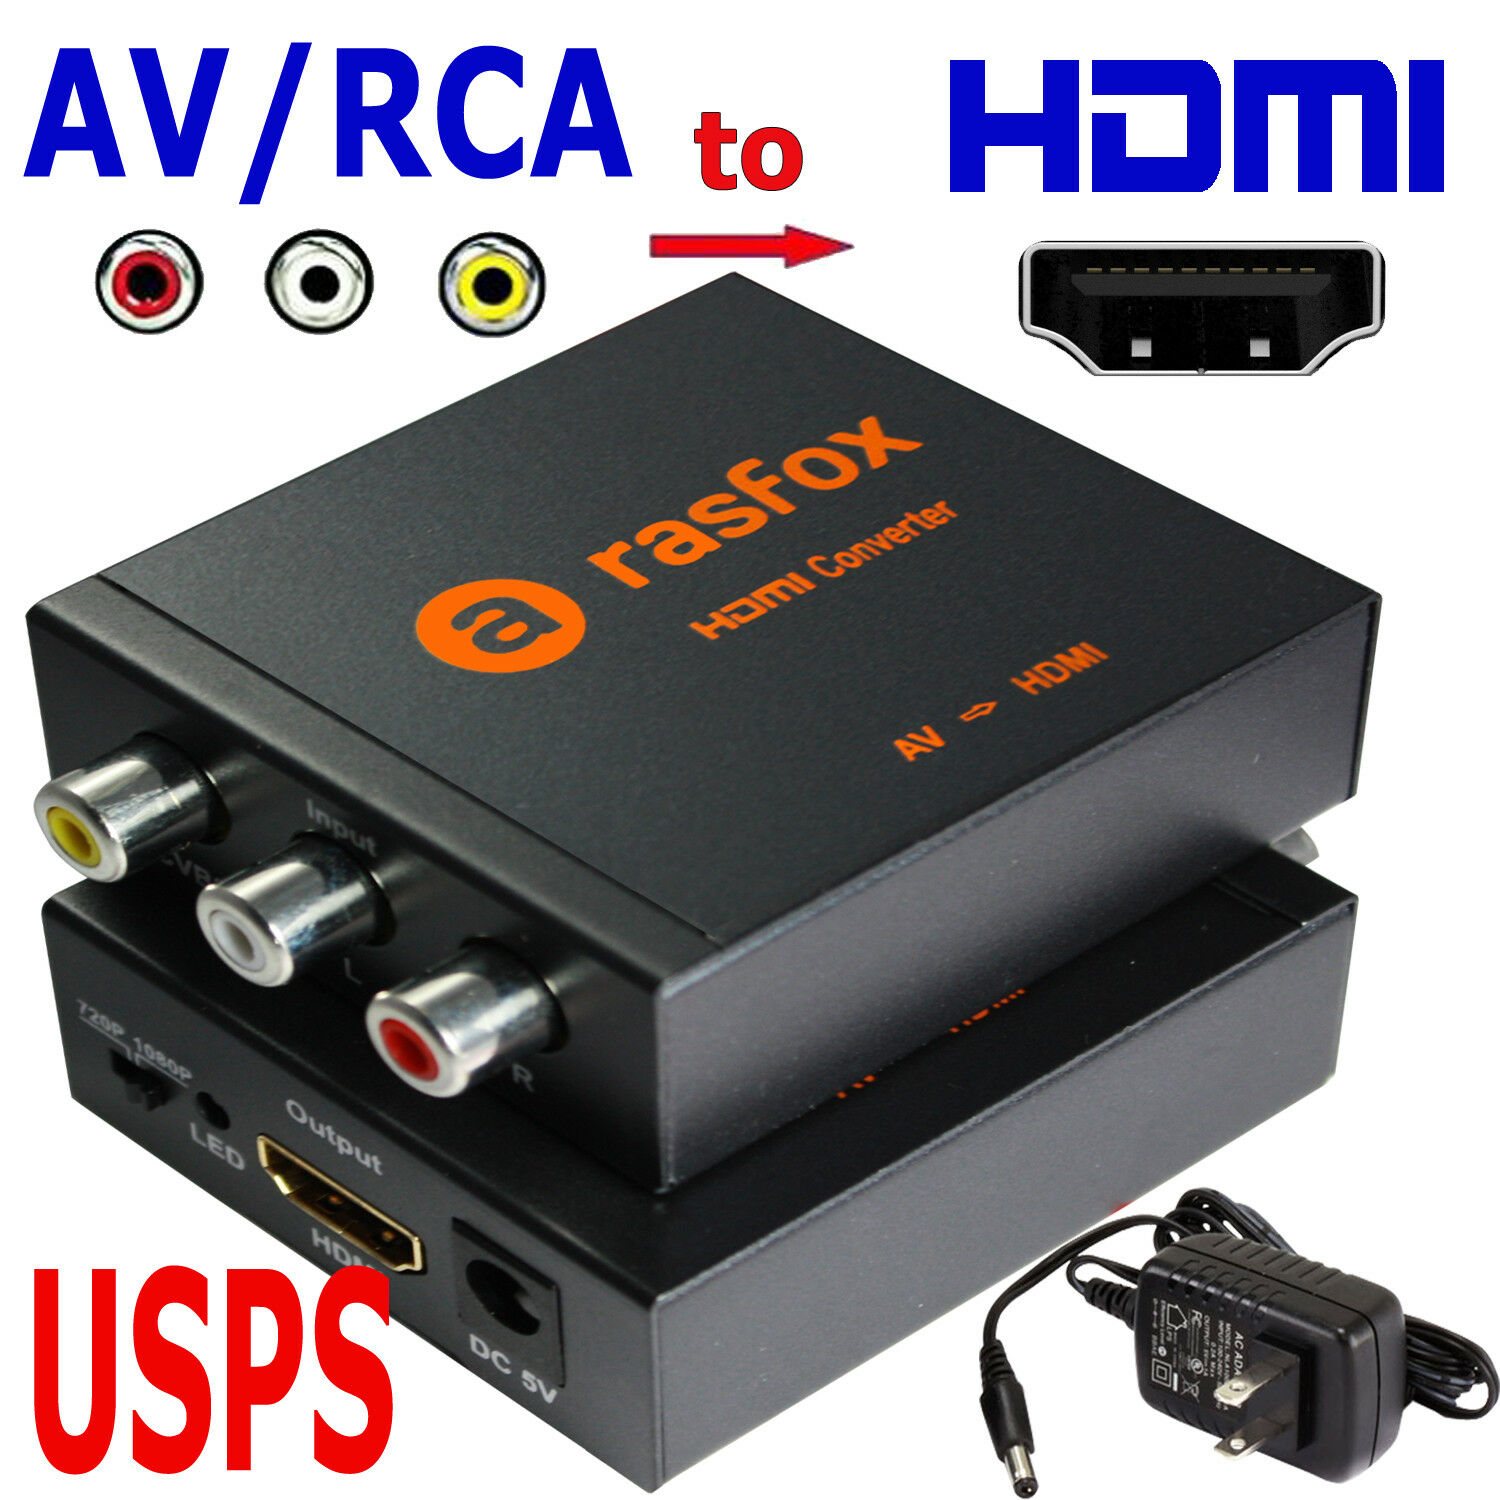 Powered Av Rca To Hdmi Converter Box Composite Cvbs Adapter 1080p Conventer Or 720p Upscaler 1 Of 1free Shipping